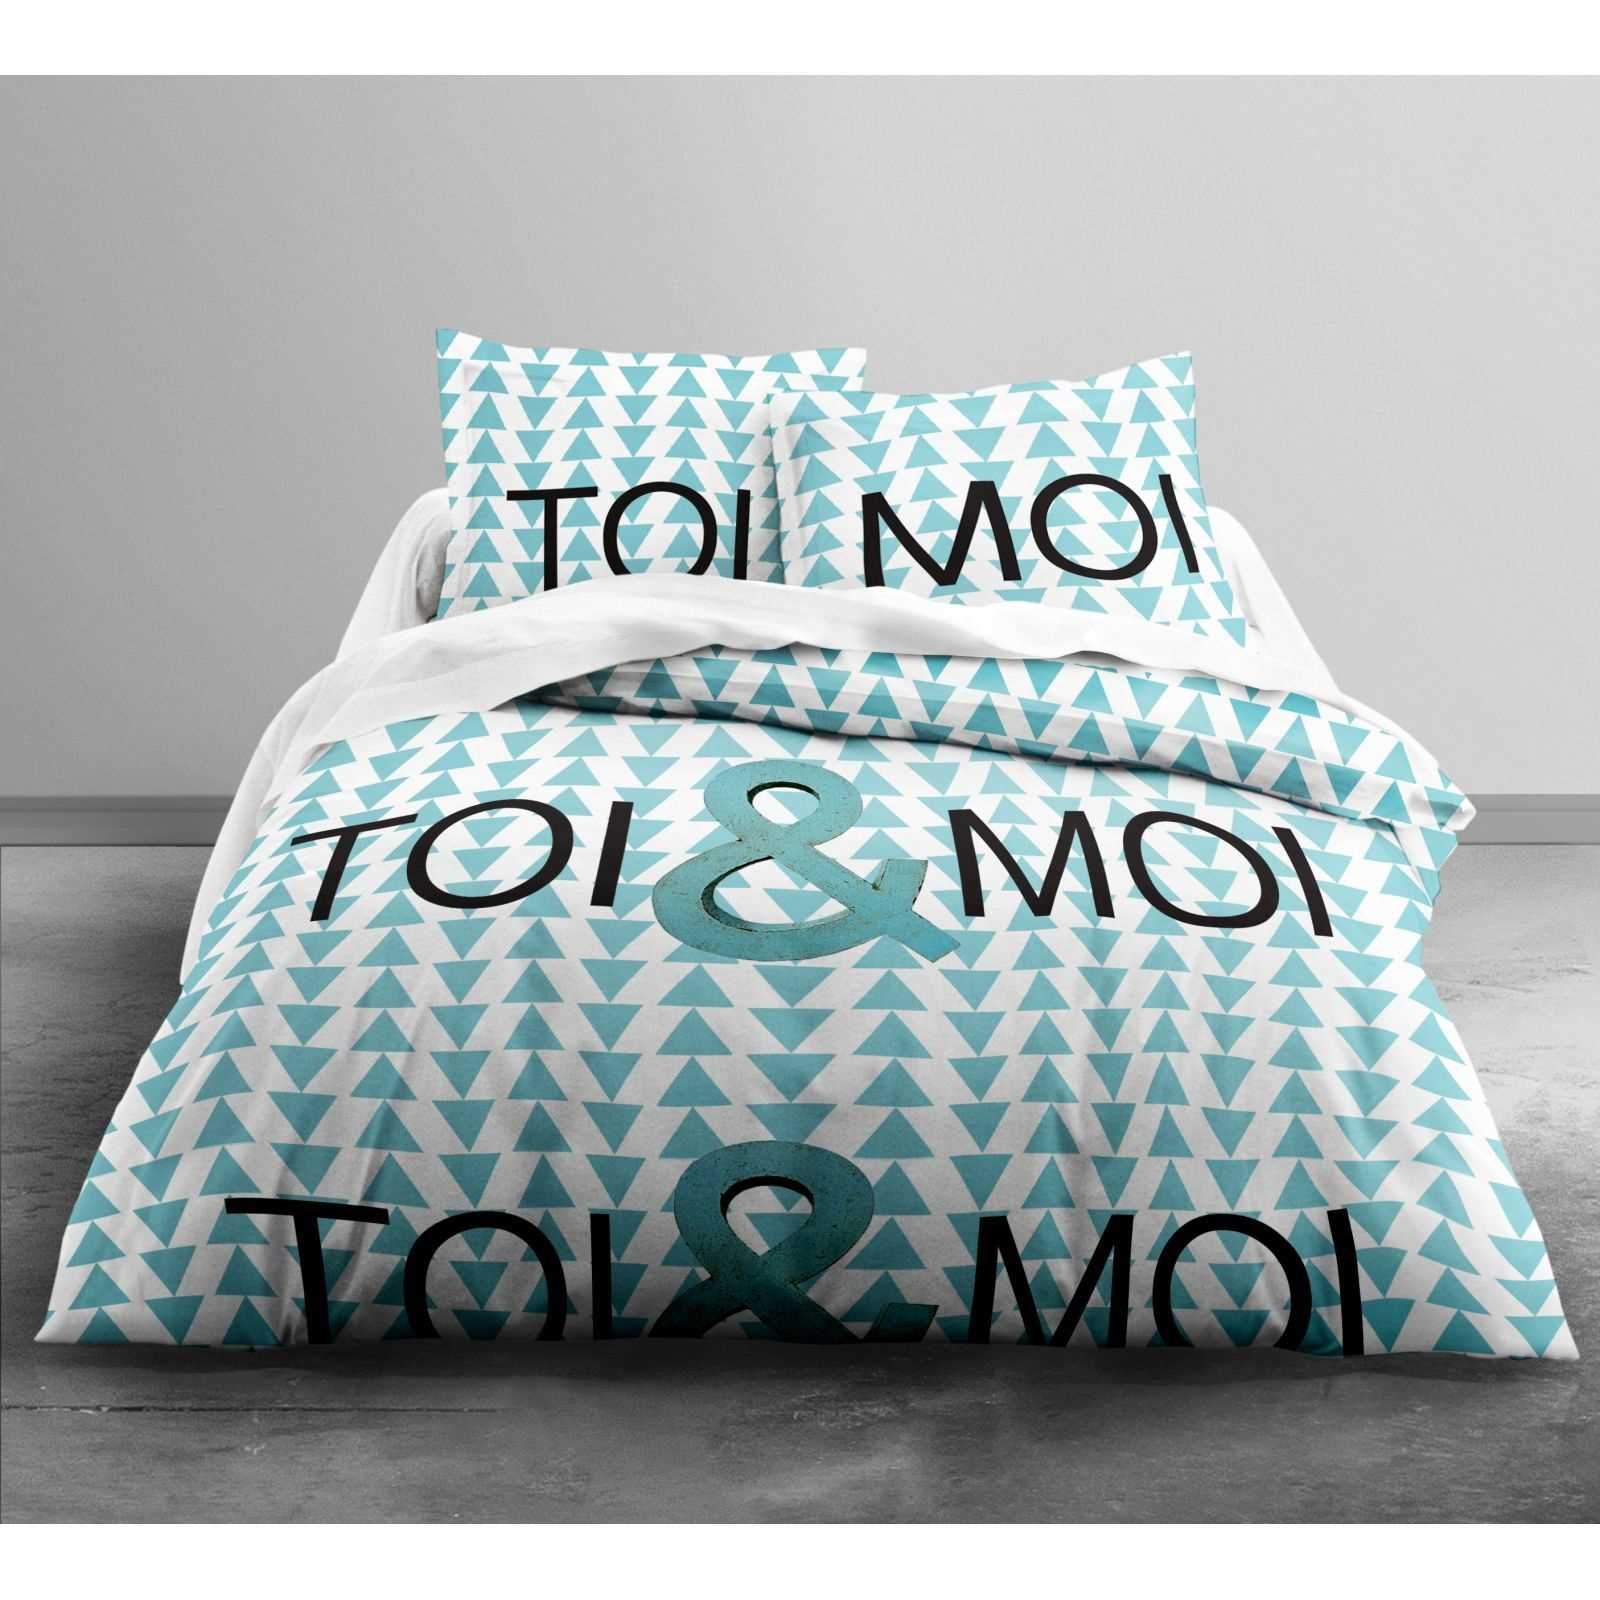 today toi moi parure de lit turquoise brandalley. Black Bedroom Furniture Sets. Home Design Ideas